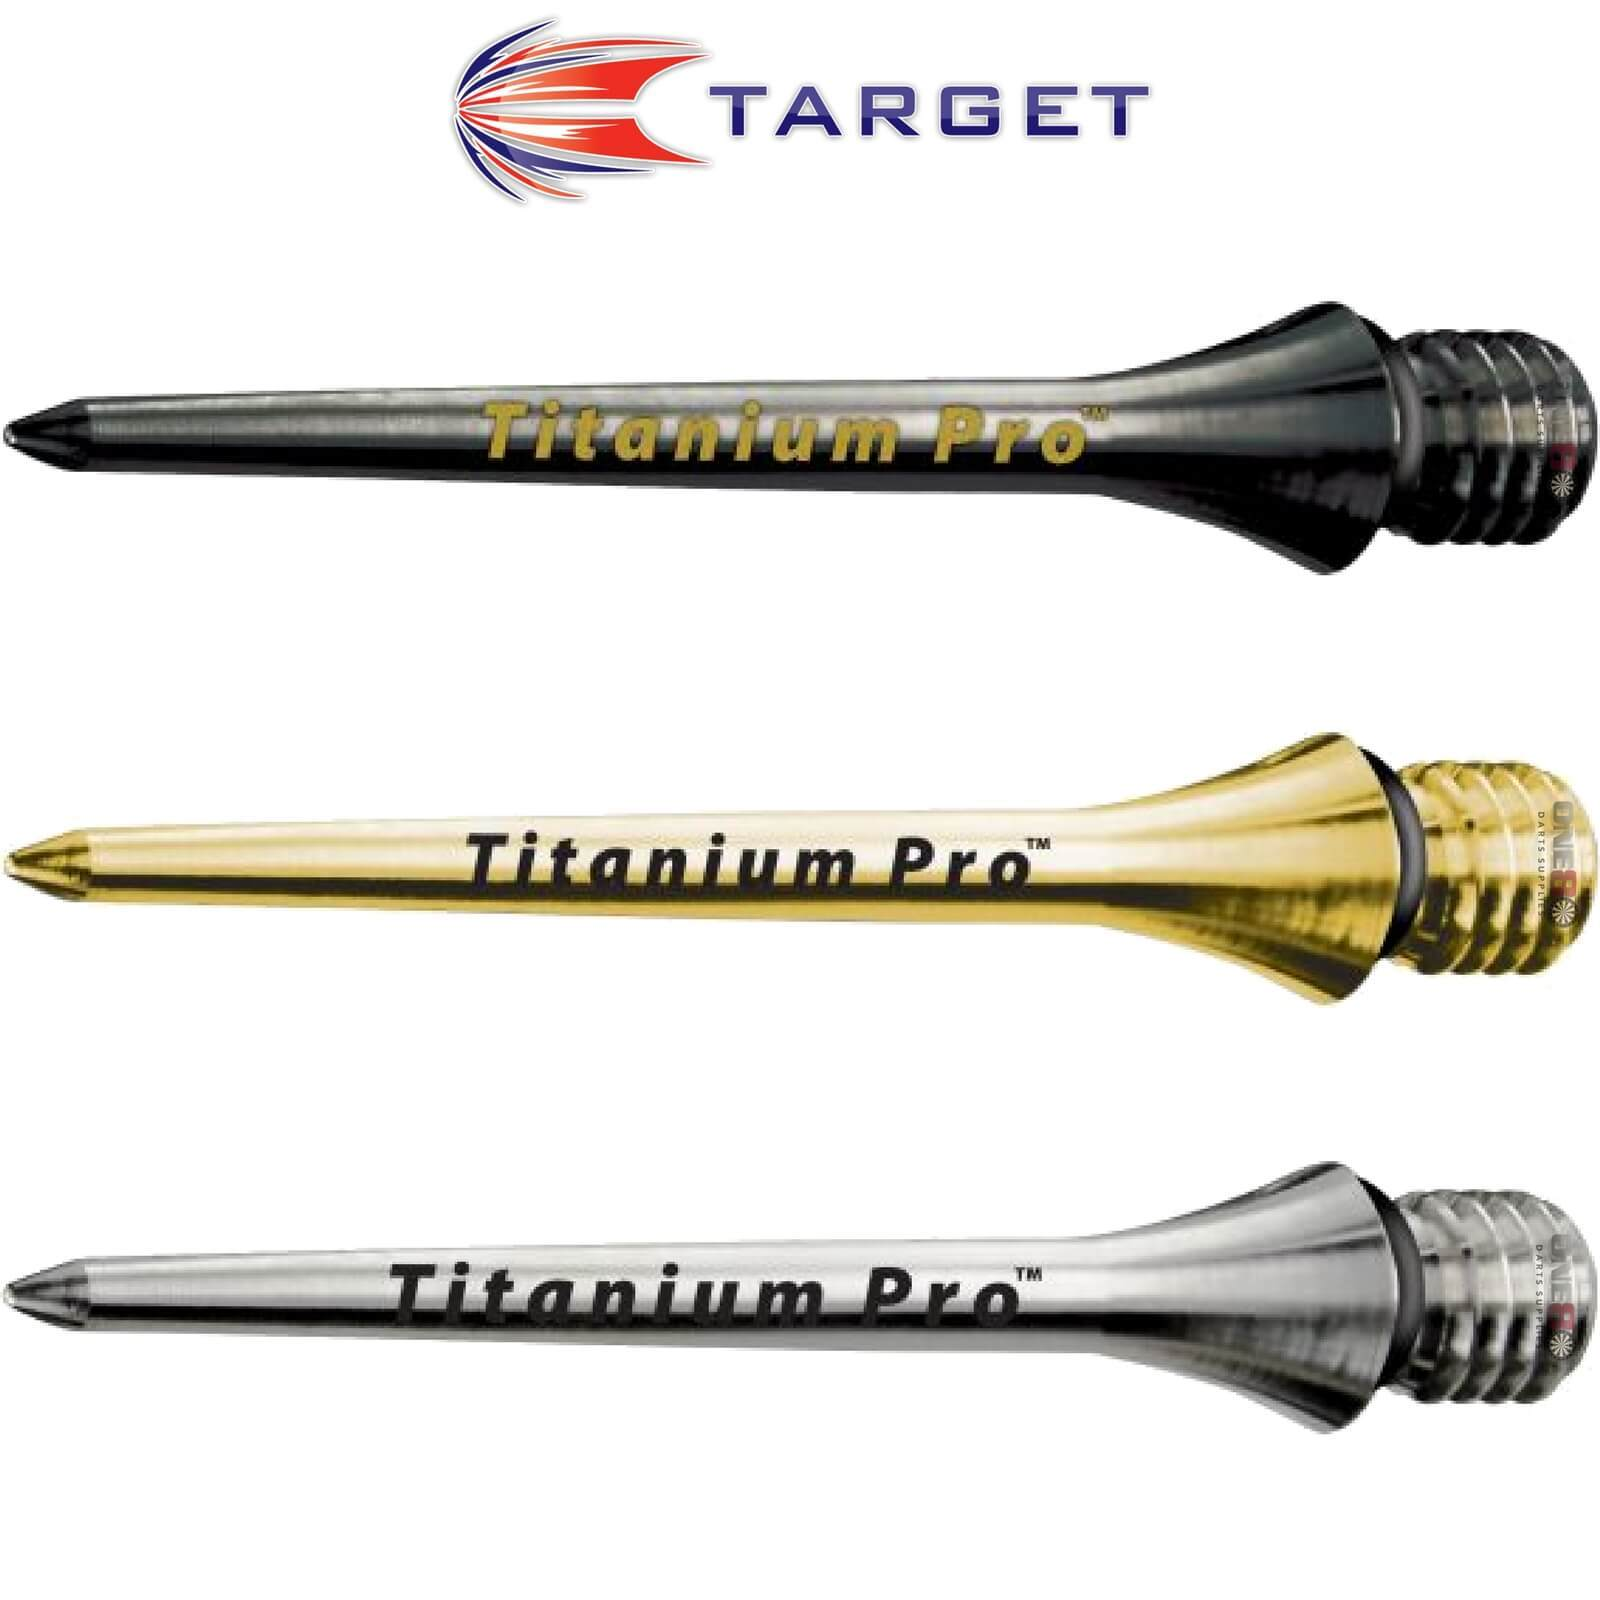 Point Accessories - Target - Titanium Pro Smooth Conversion Dart Points - 26mm 30mm